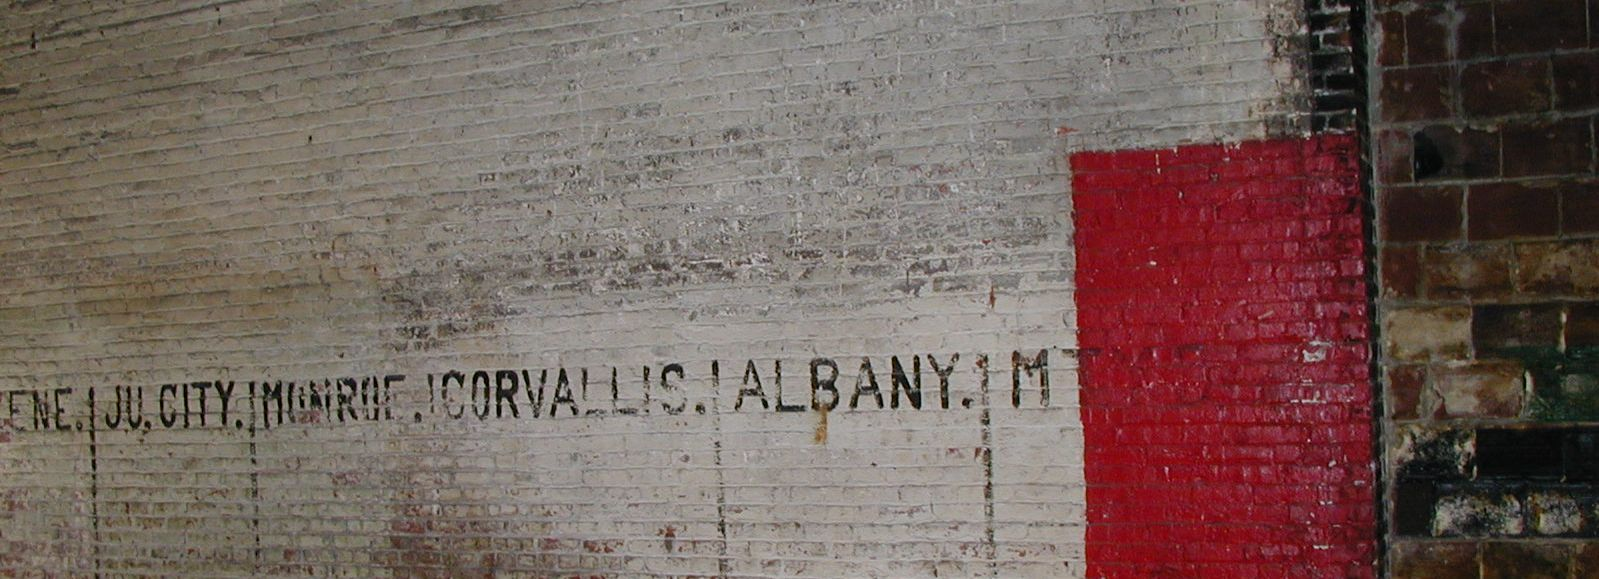 old brick warehouse wall, painted with the names of Oregon cities, Ecotrust